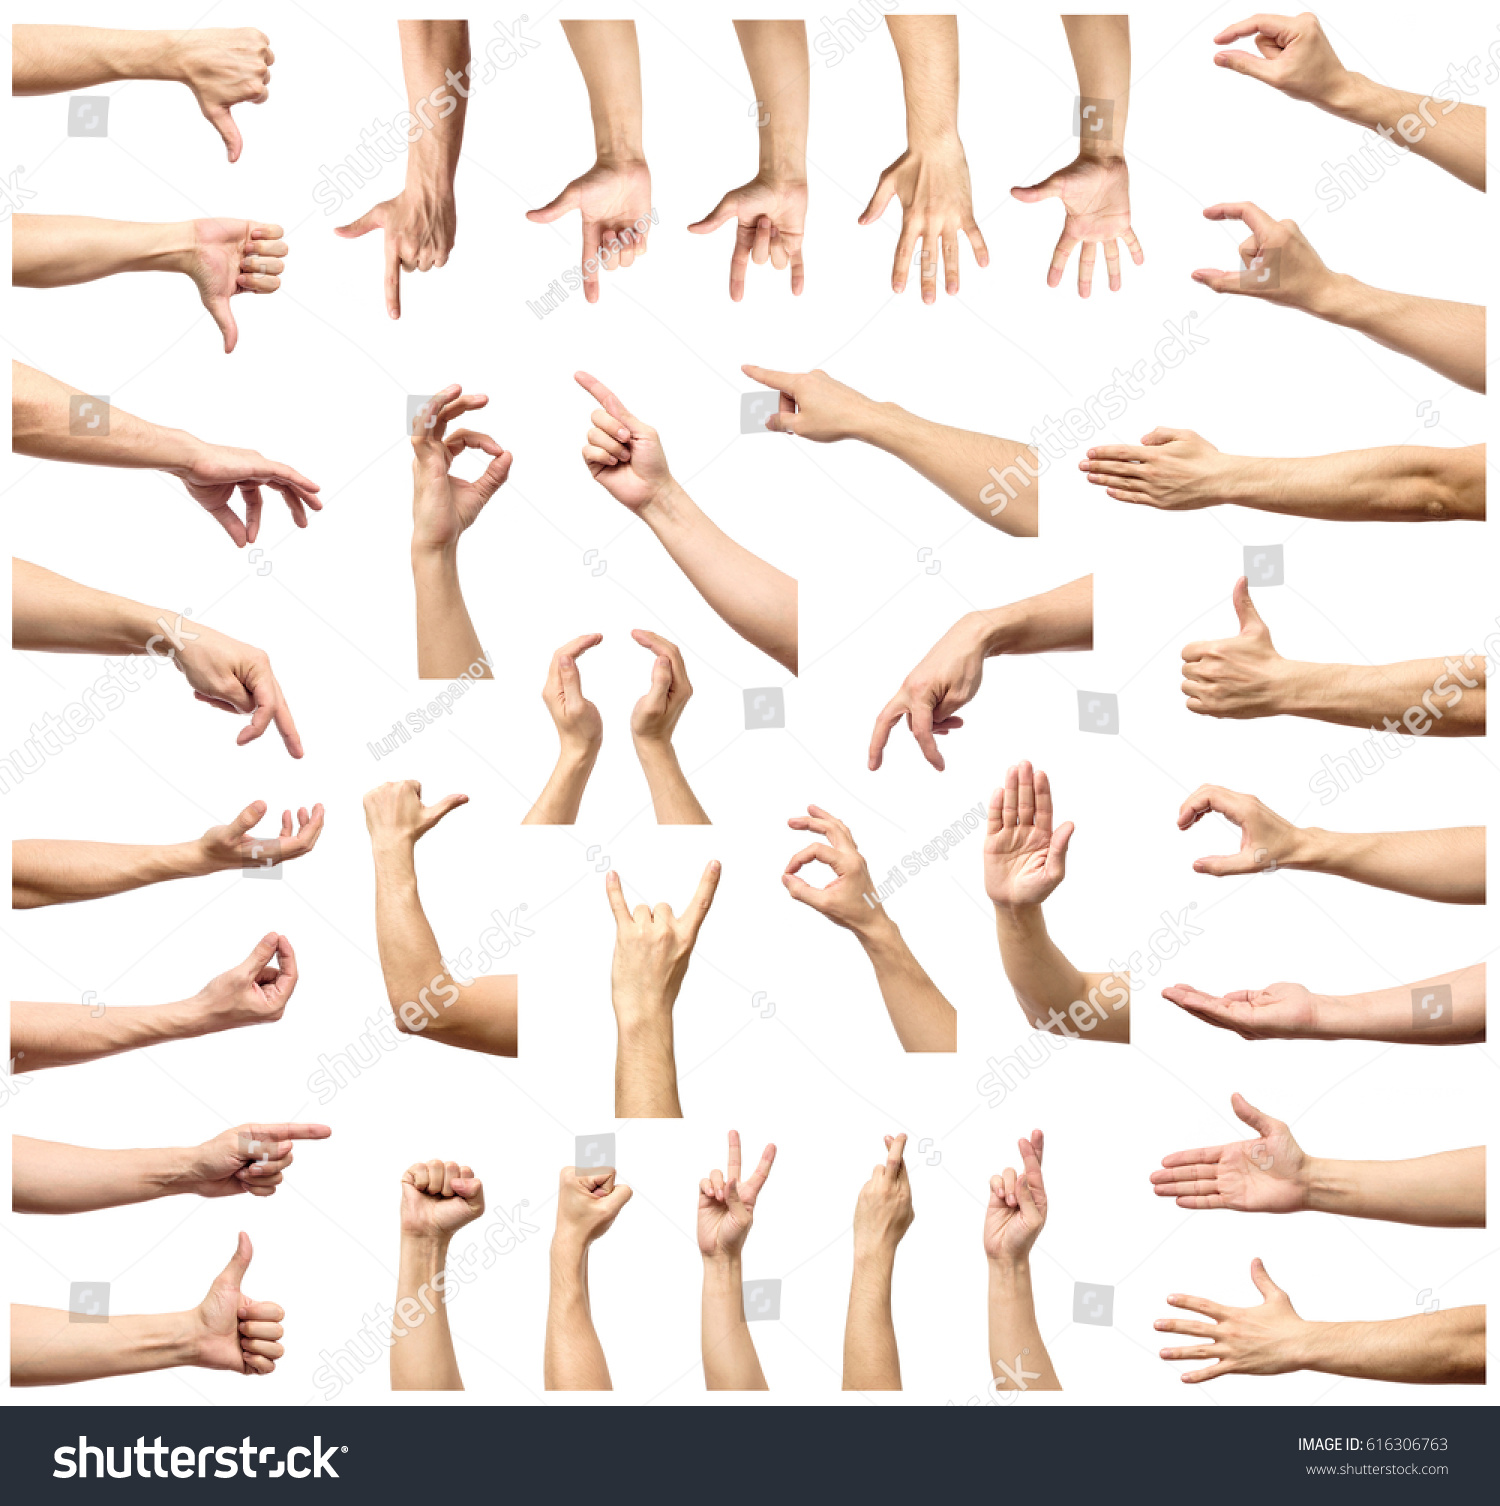 Z index multiple background images - Male Hand Gesture And Sign Collection Isolated Over White Background Set Of Multiple Pictures